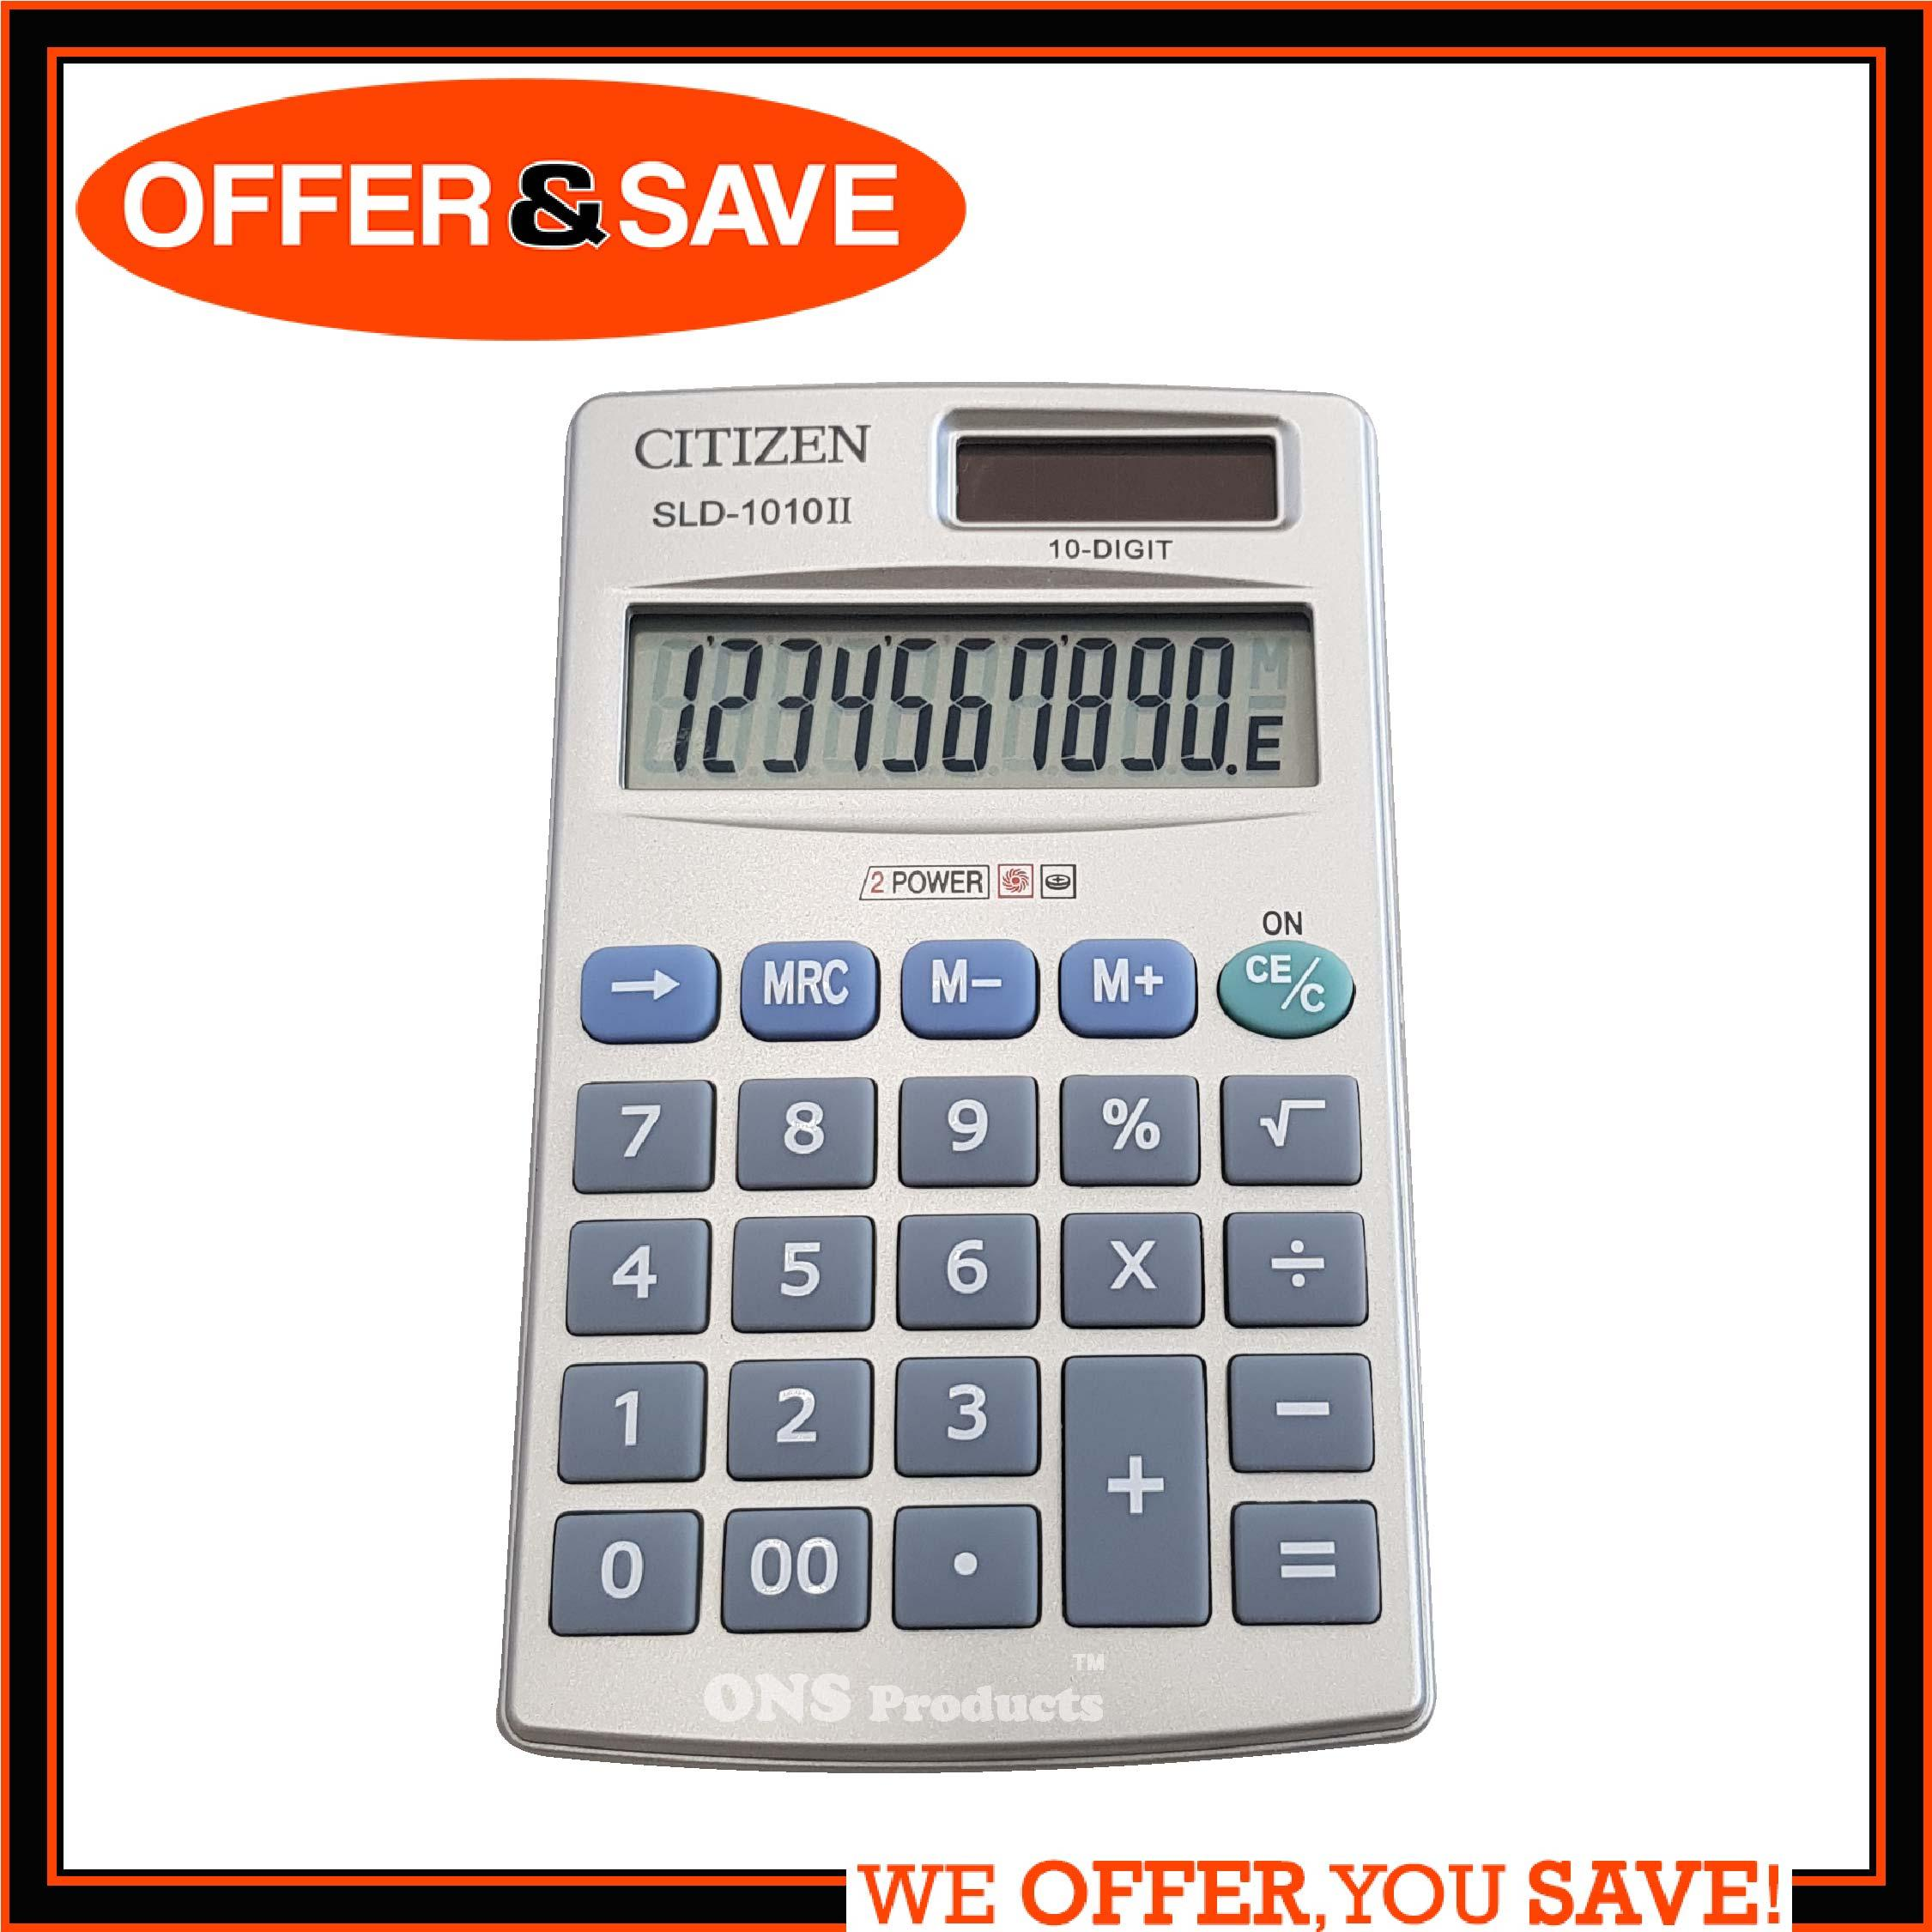 CITIZEN Pocket Calculator SLD-1010